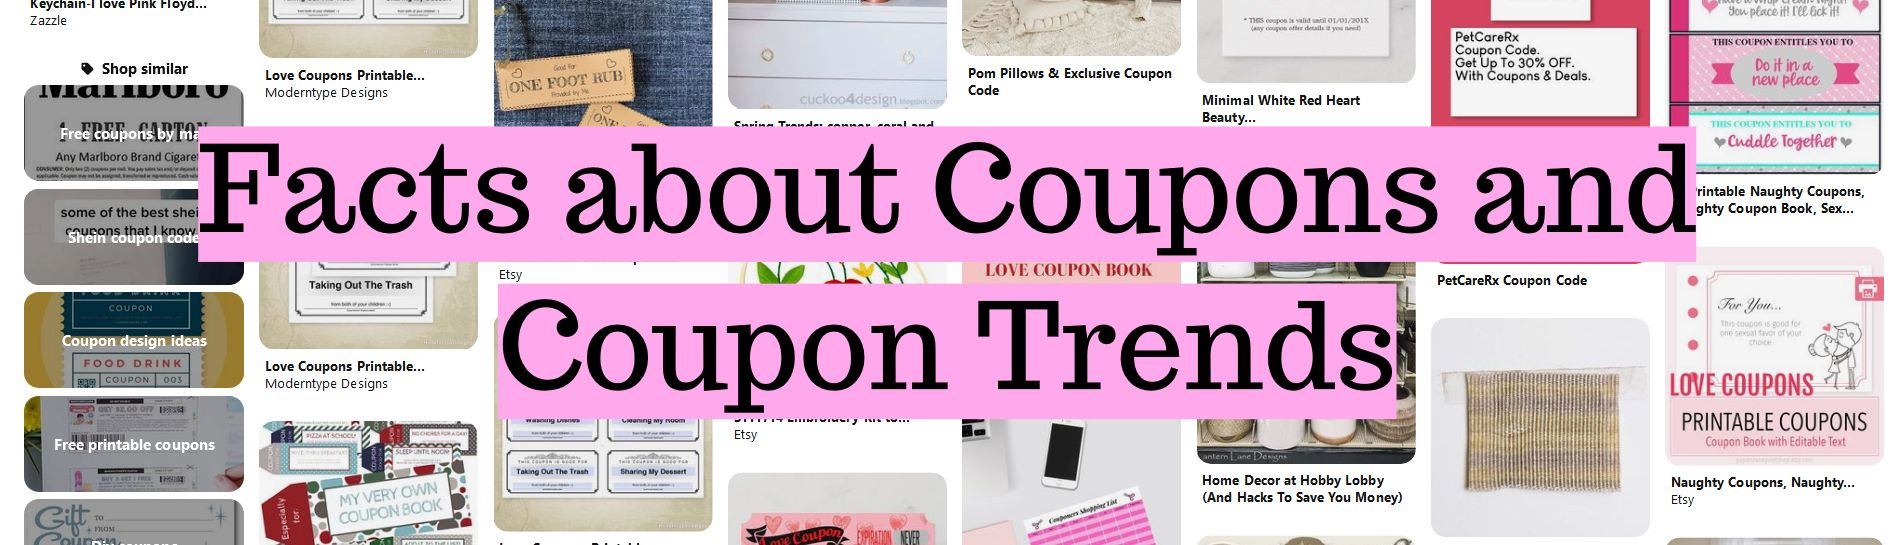 Facts about Coupons and Coupon Trends